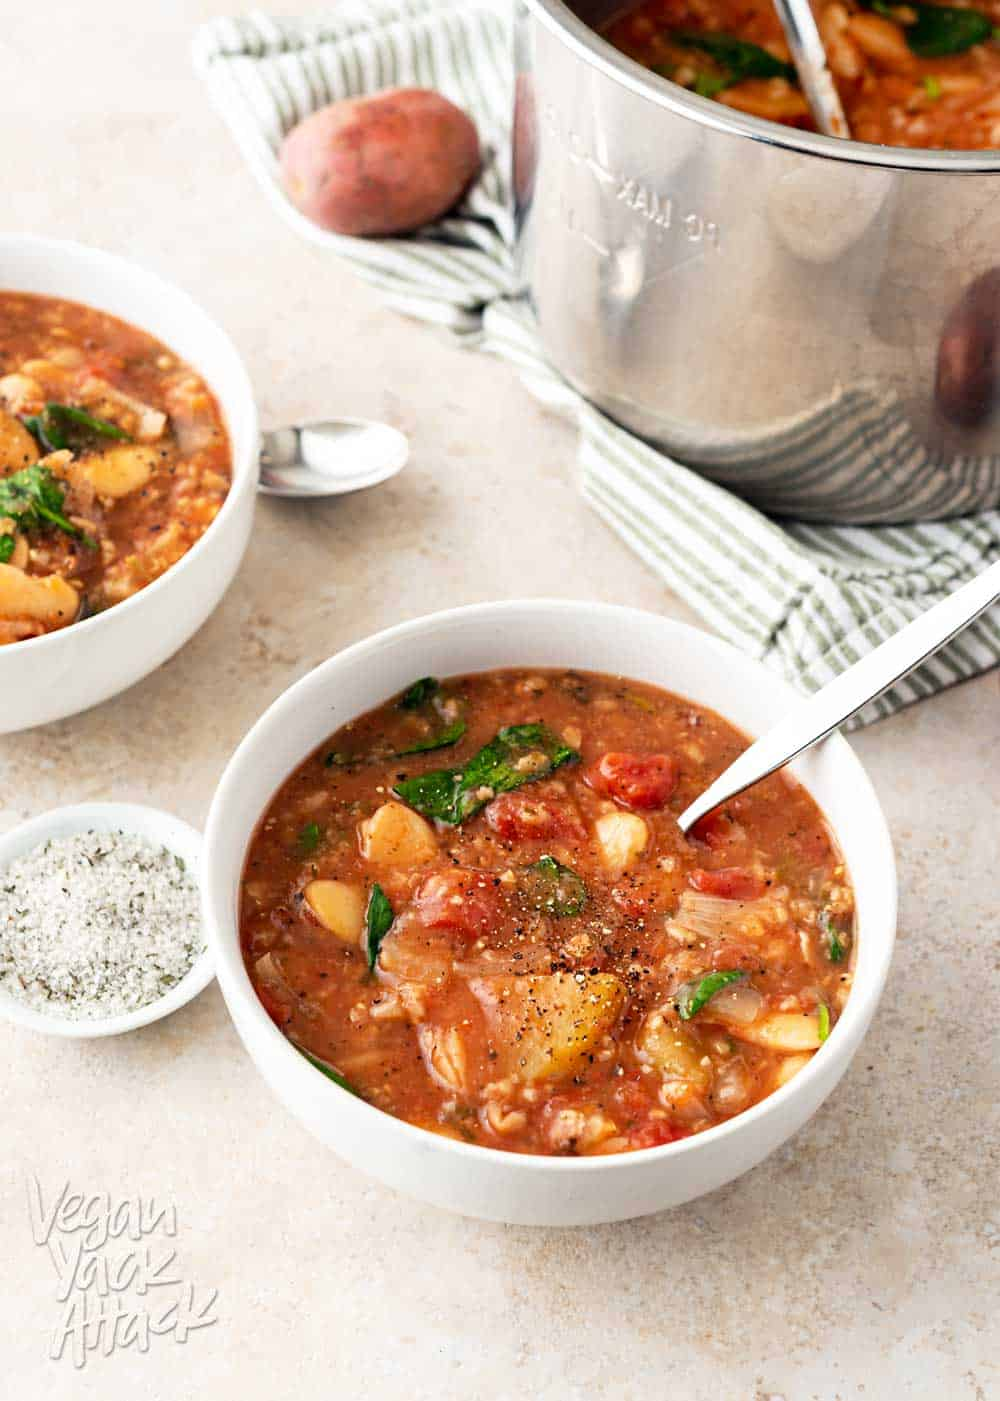 A picture of two bowls of slow cooker lima bean tomato stew, next to an Instant Pot insert, on a light table top